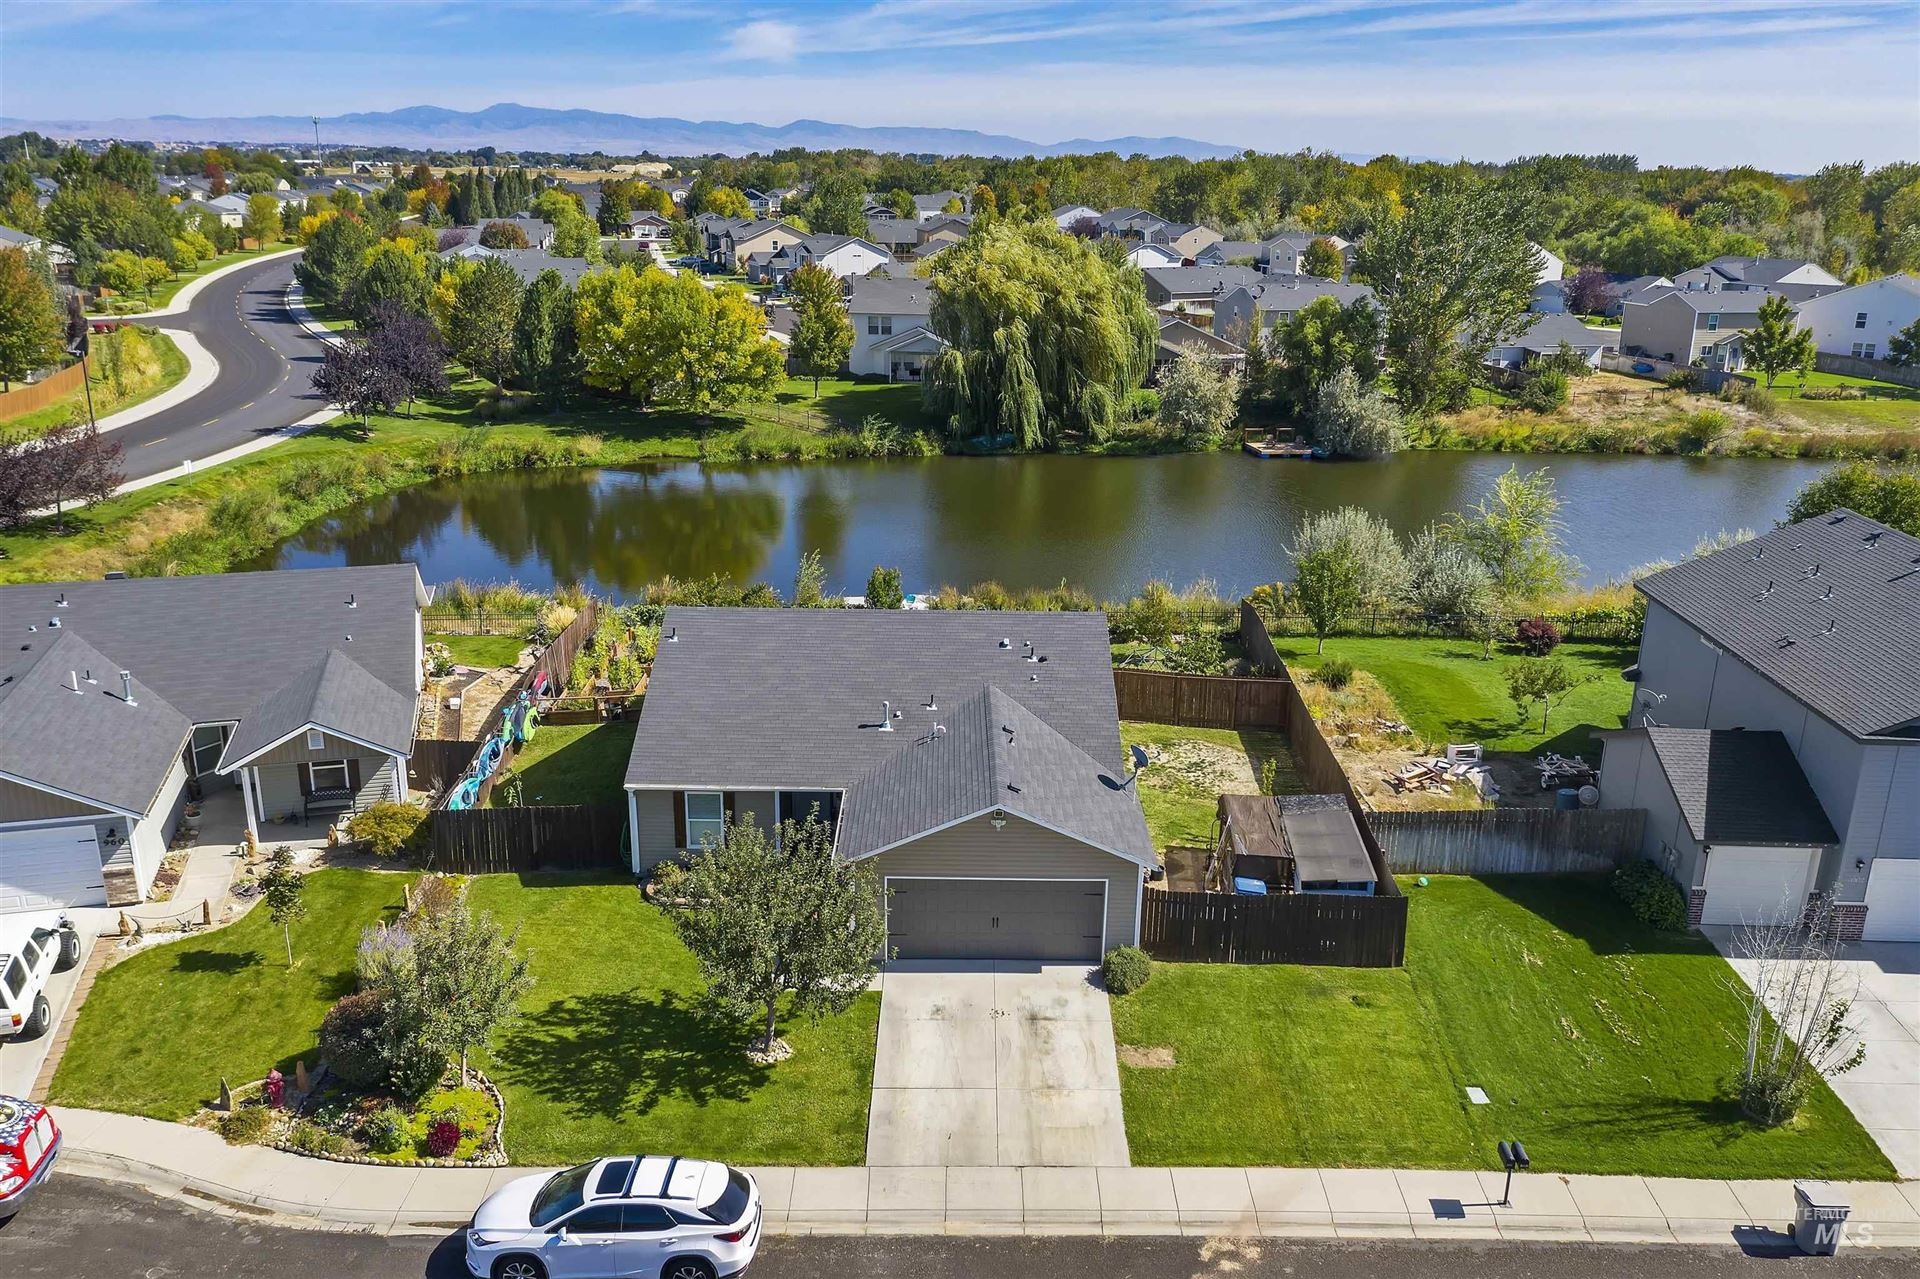 994 S Twin Lakes Ave, Middleton, ID 83644 - MLS#: 98820459